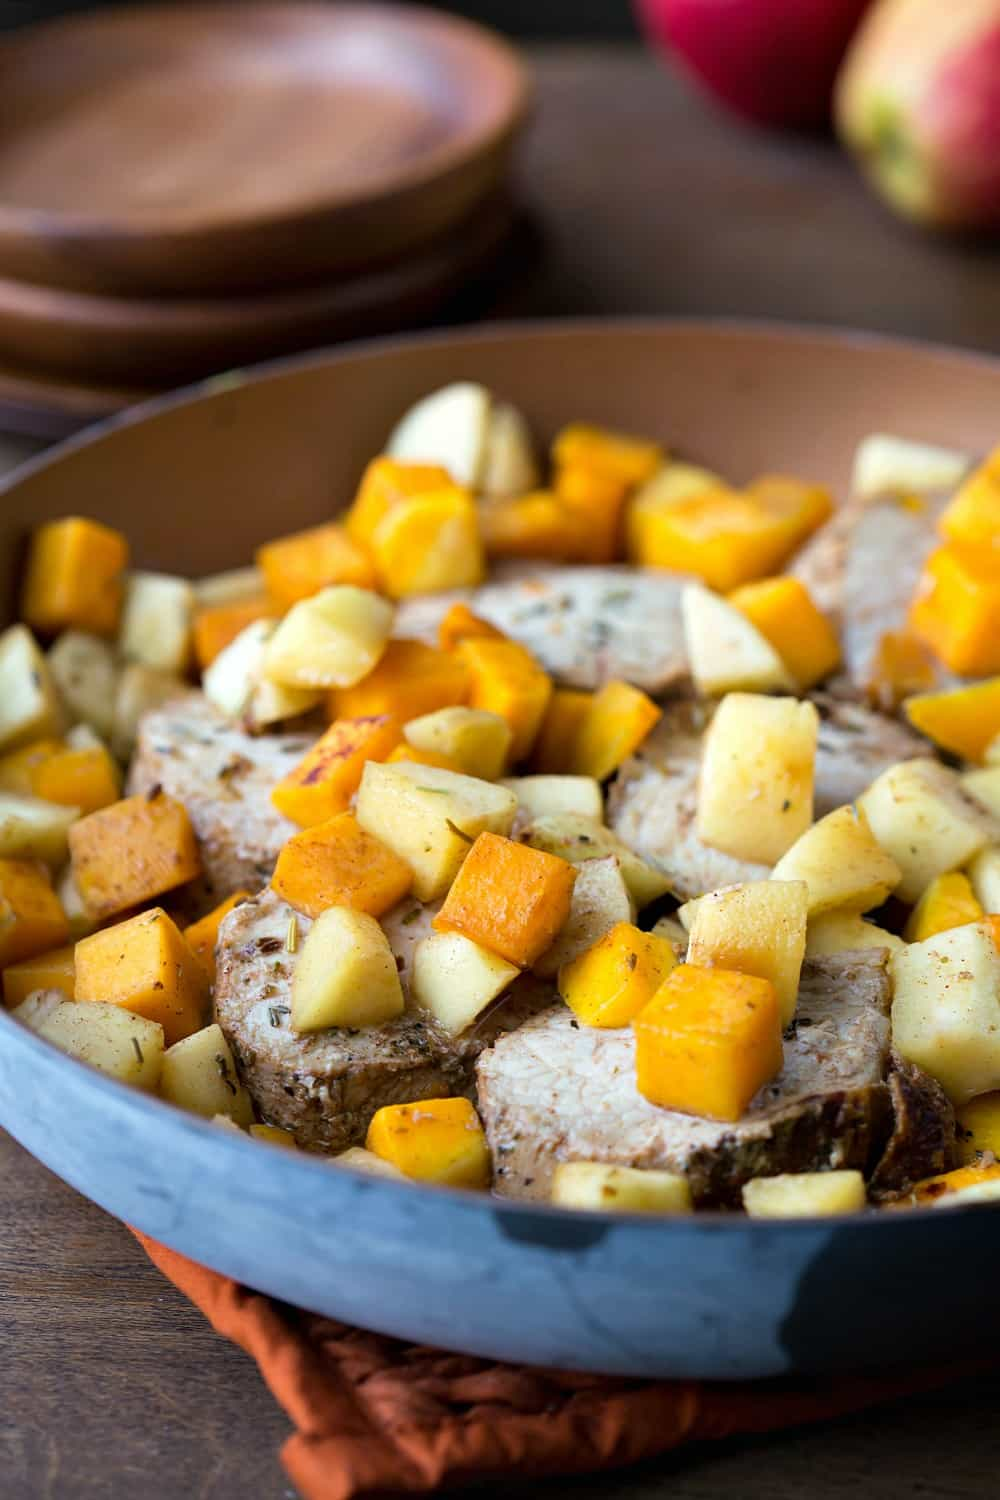 Apple and Butternut Squash Pork Loin Filet